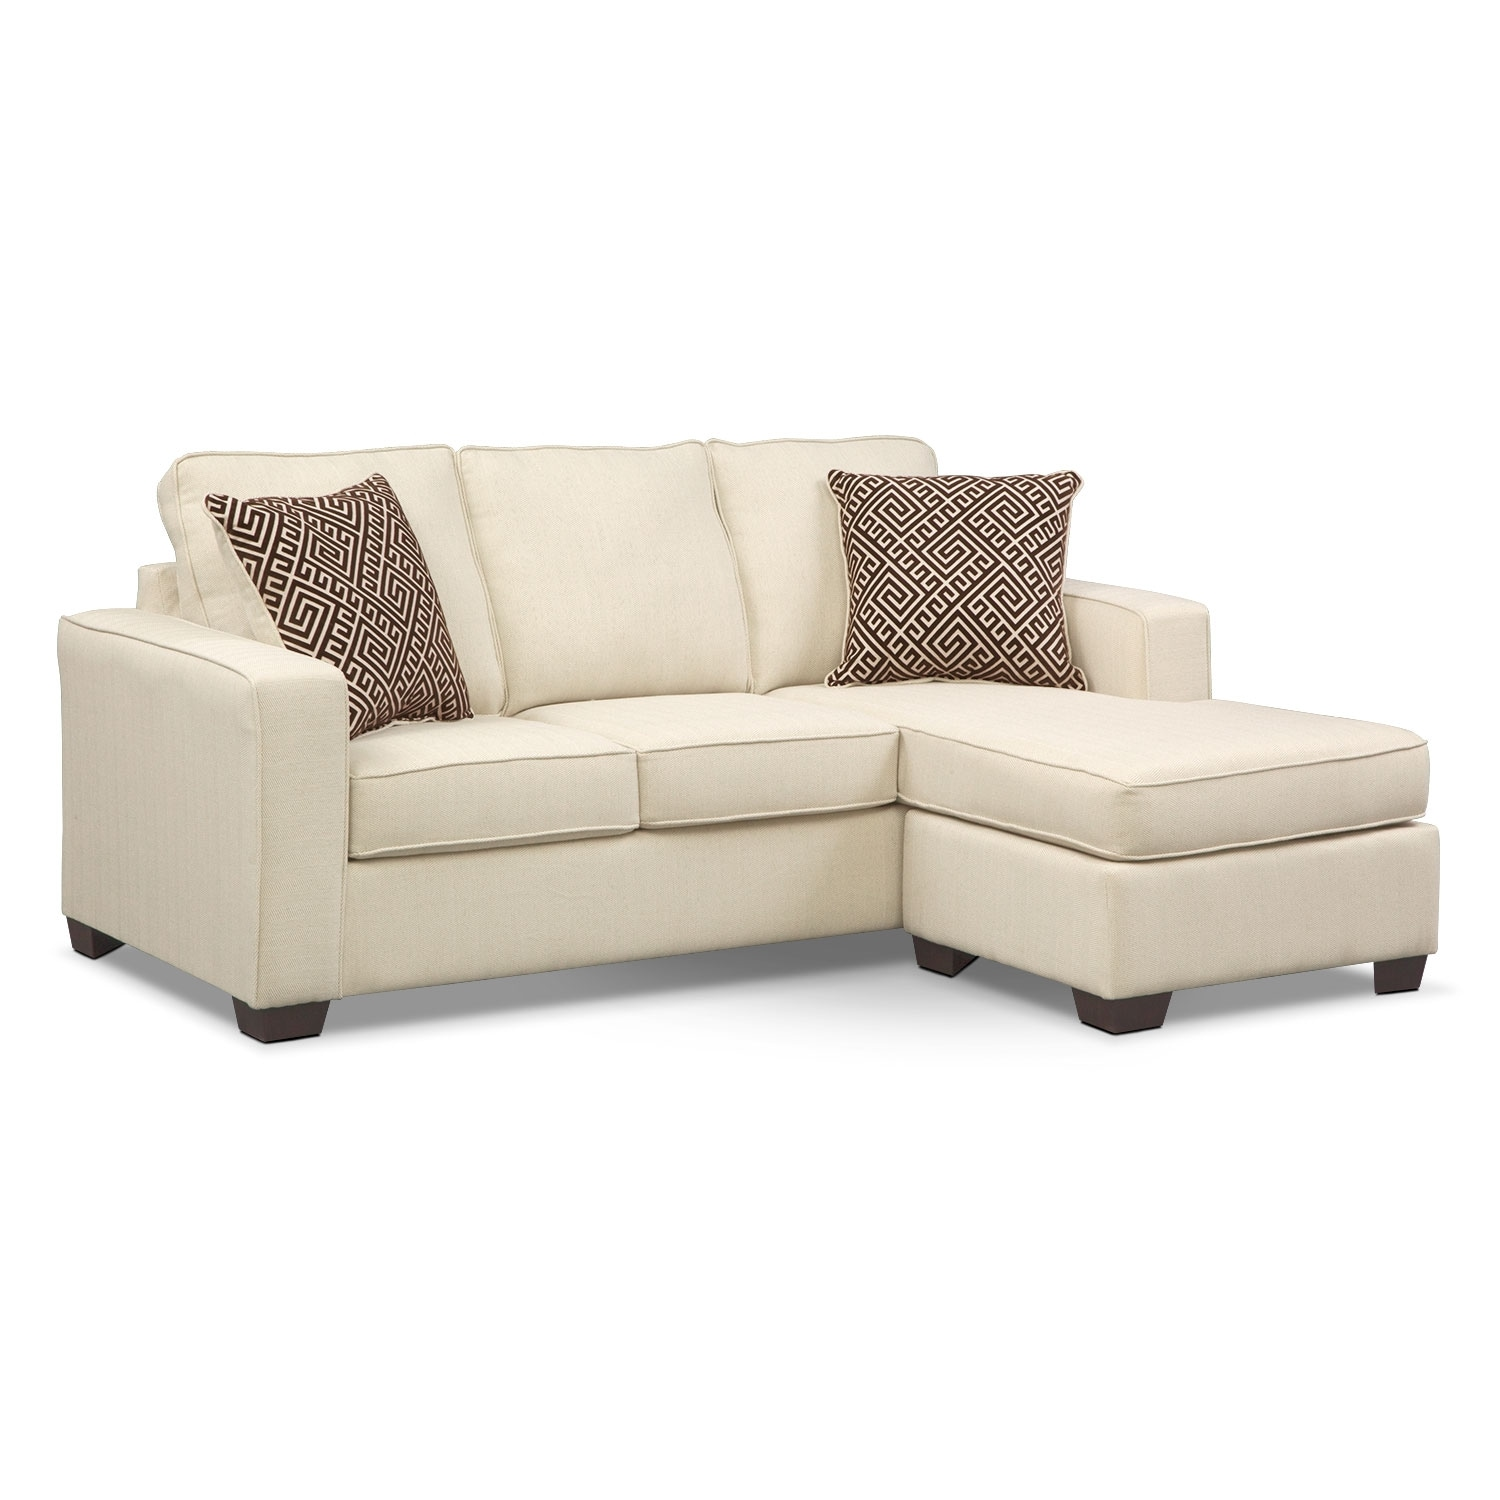 Sterling Memory Foam Sleeper Sofa With Chaise Beige American Signature Furniture